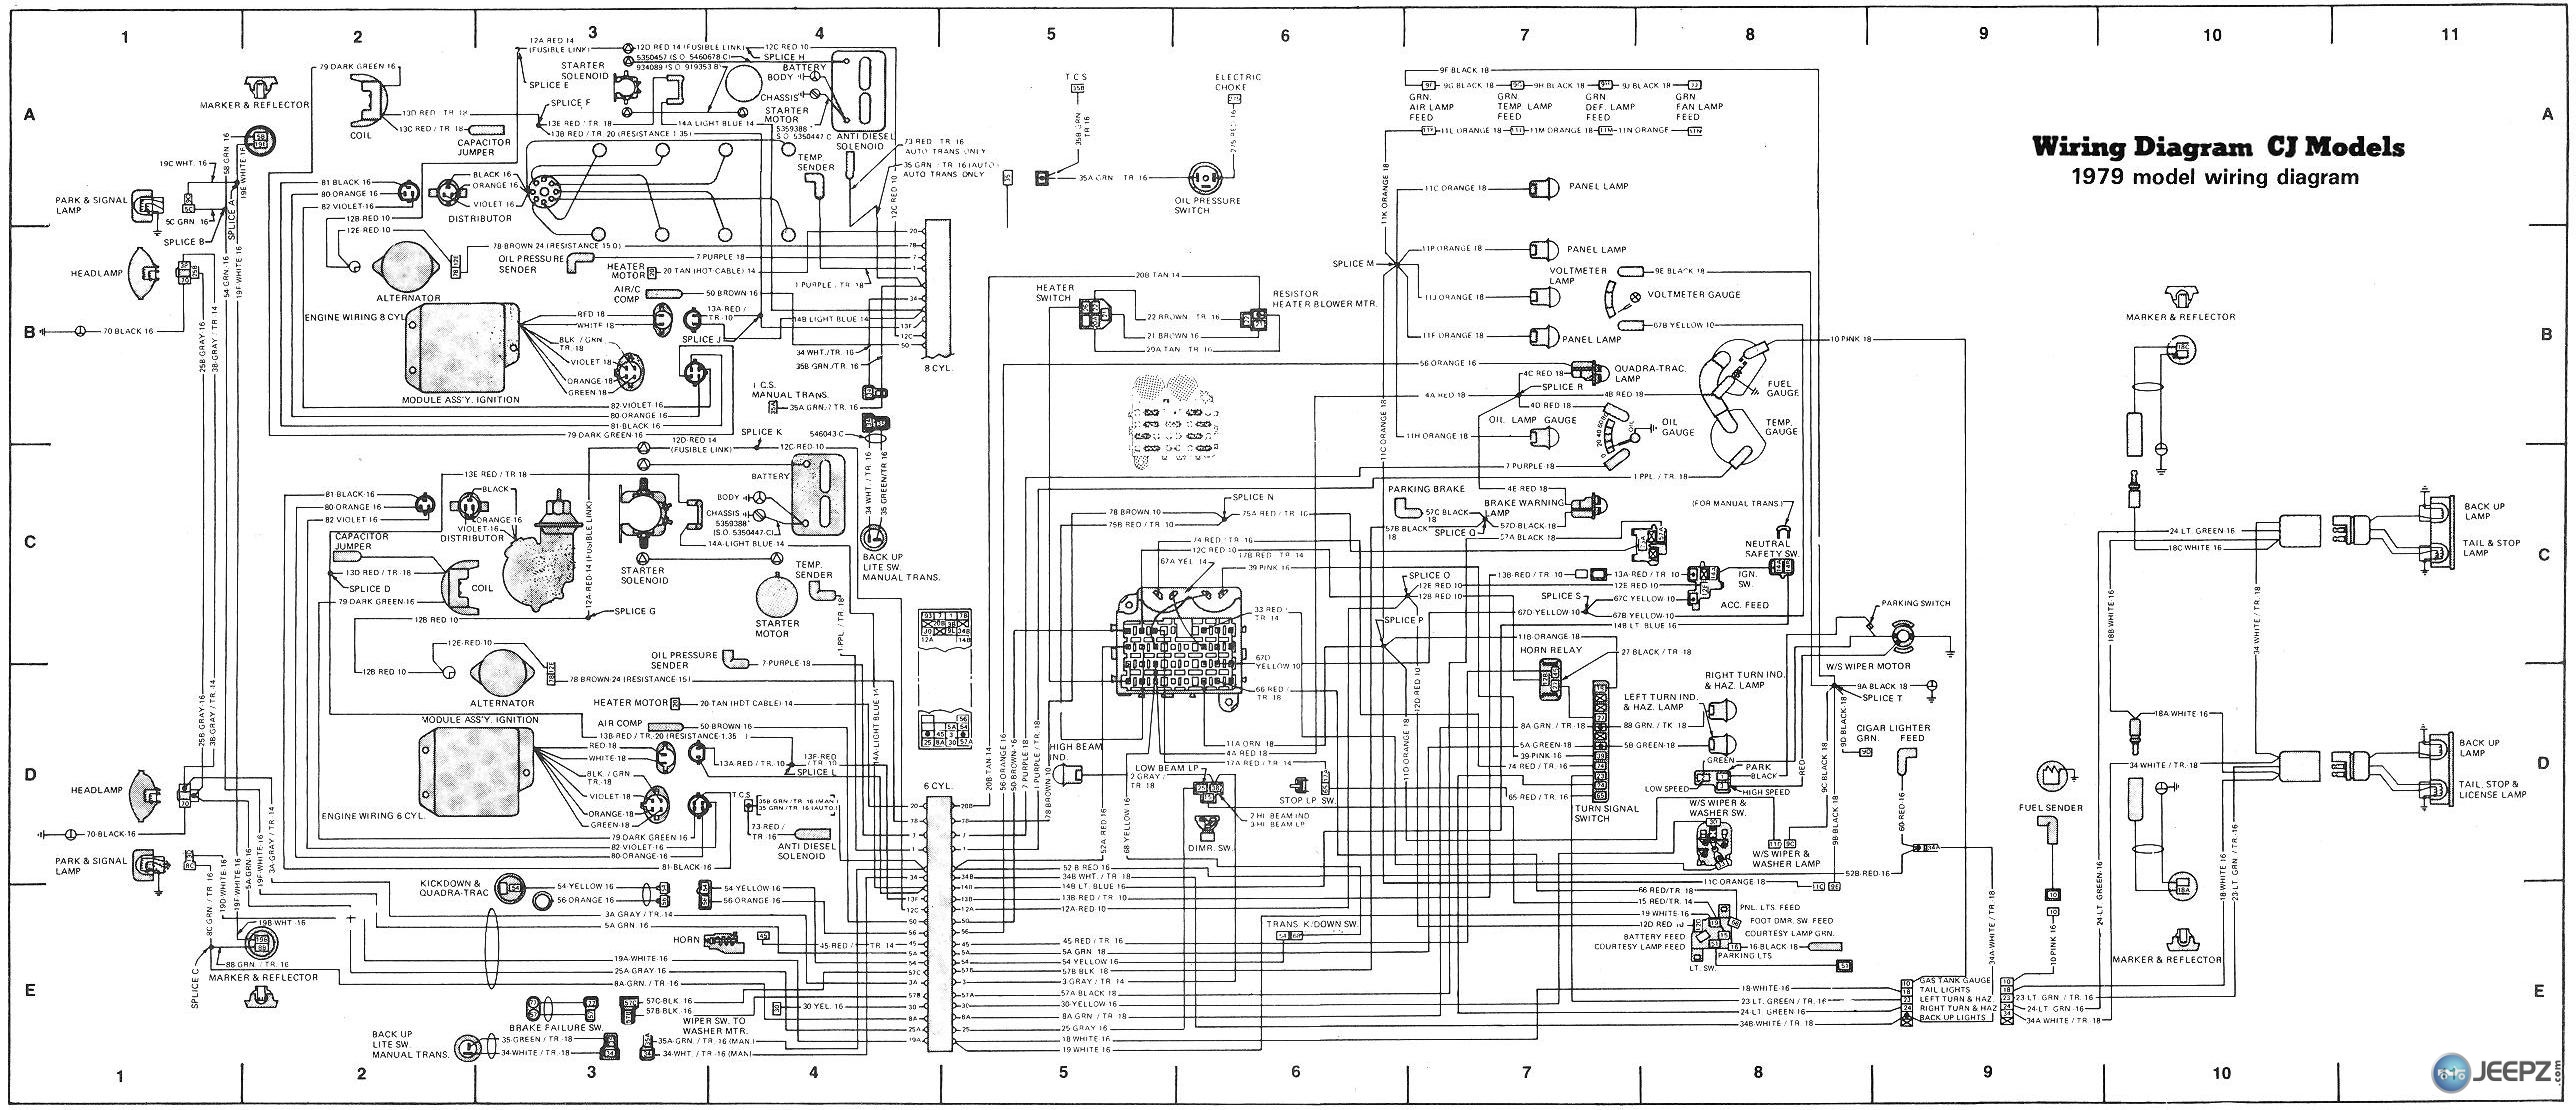 1978 Jeep Cj7 Wiring Diagram Headlights Schematic 2019 1981 280zx Ecu Headlight Simple Rh David Huggett Co Uk